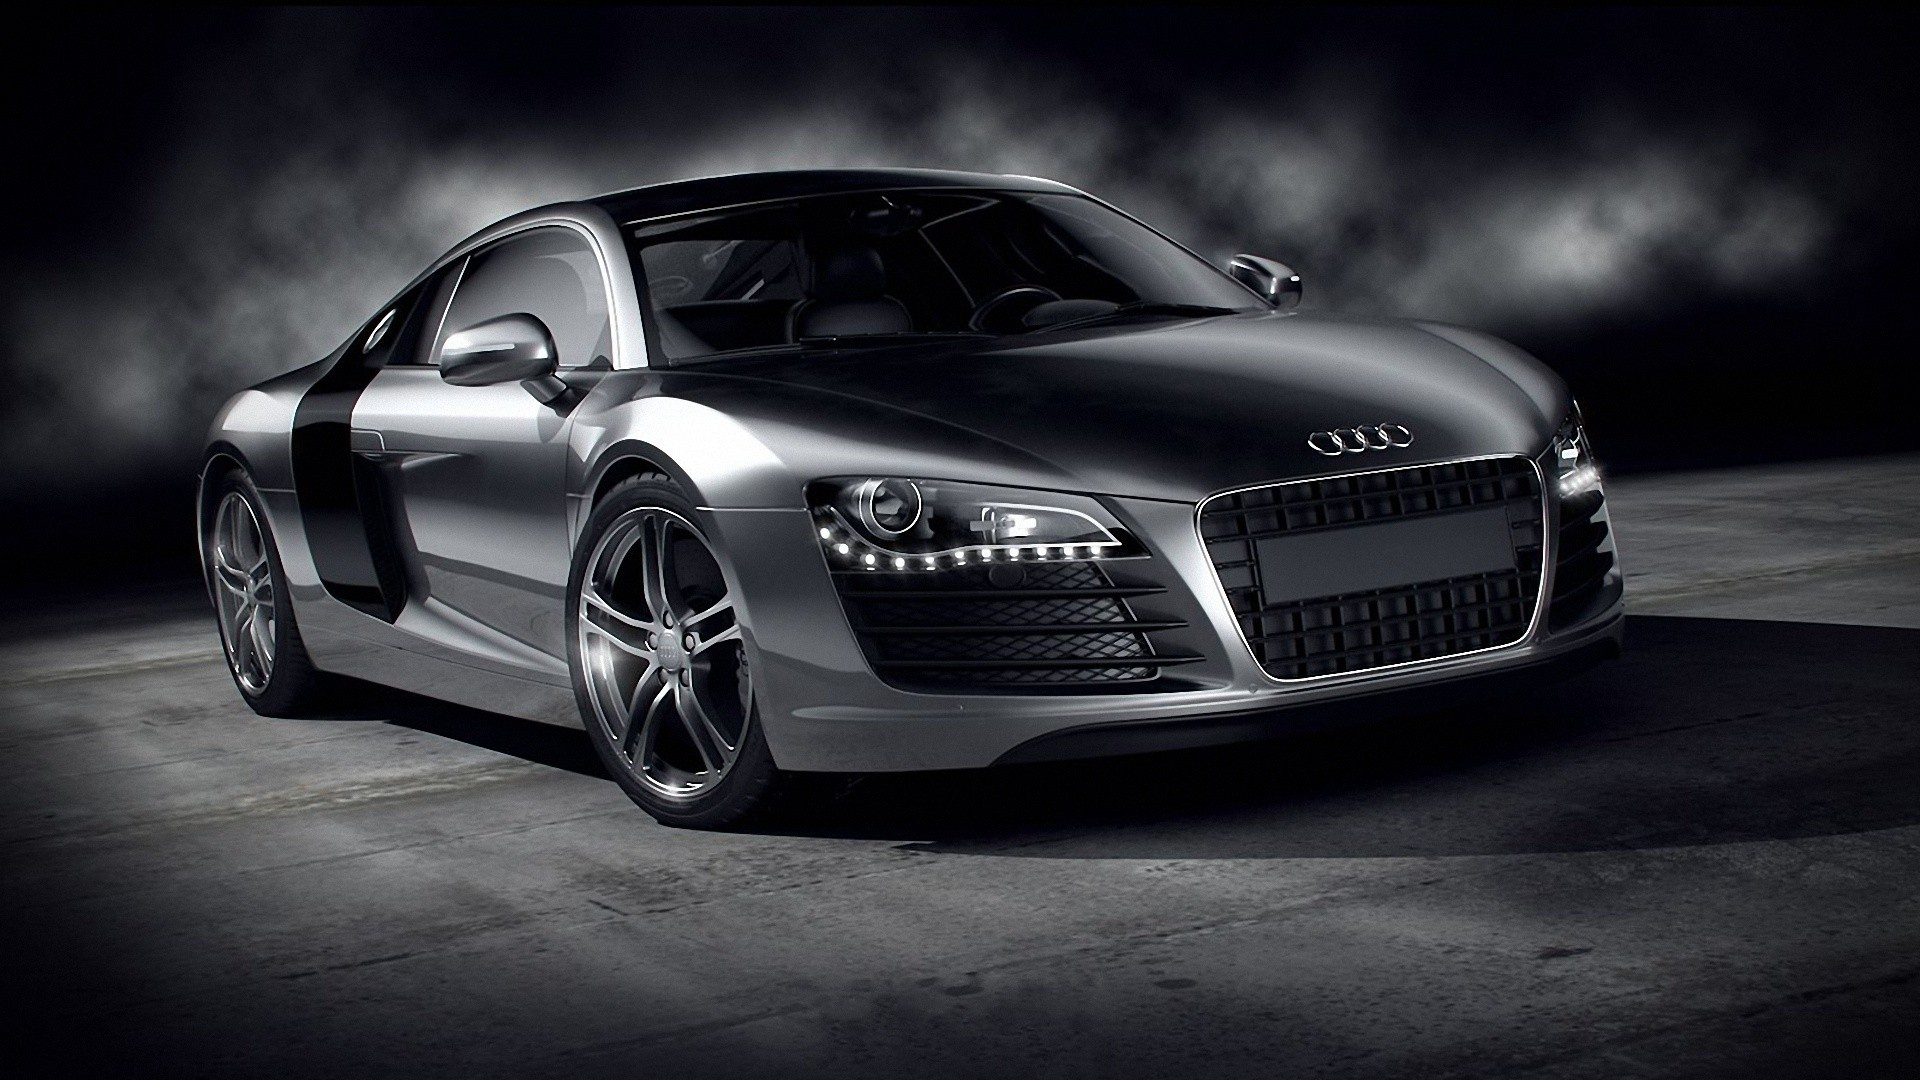 40 Audi Wallpaper 1920x1080 On Wallpapersafari